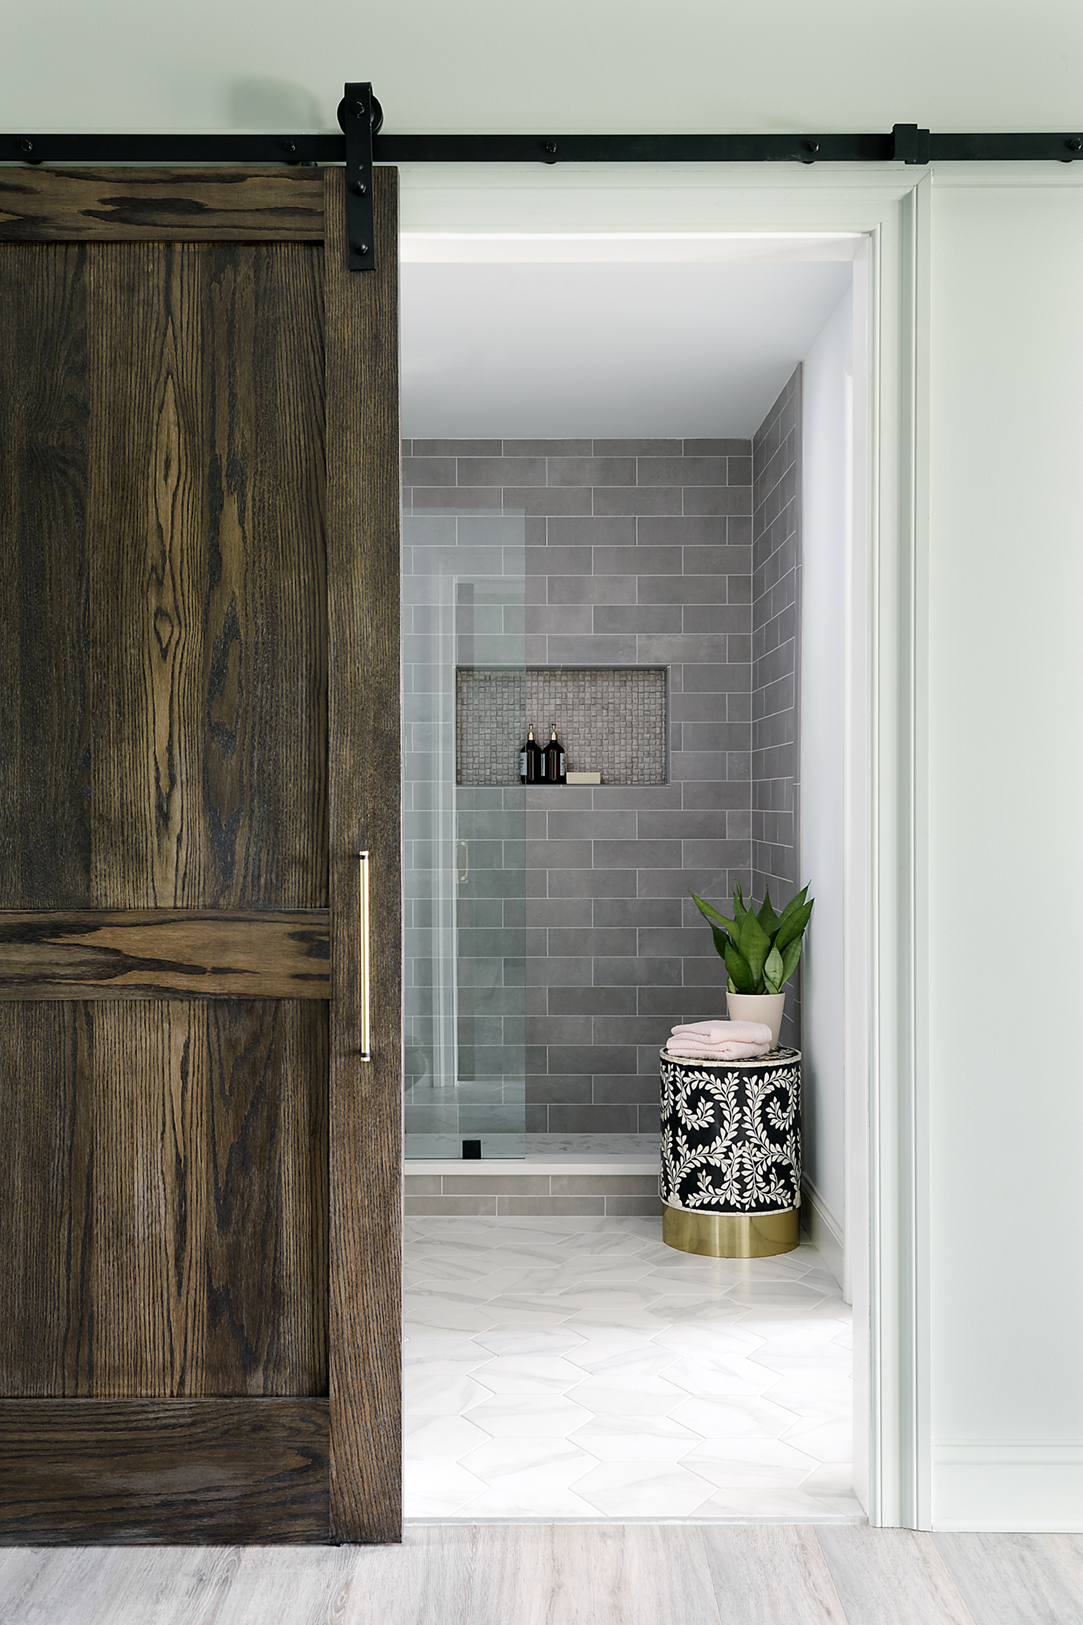 The sliding barn door adds the perfect final touch for this easy to access, modern bathroom. And check out that inlay stool that adds a pretty pattern to the space.